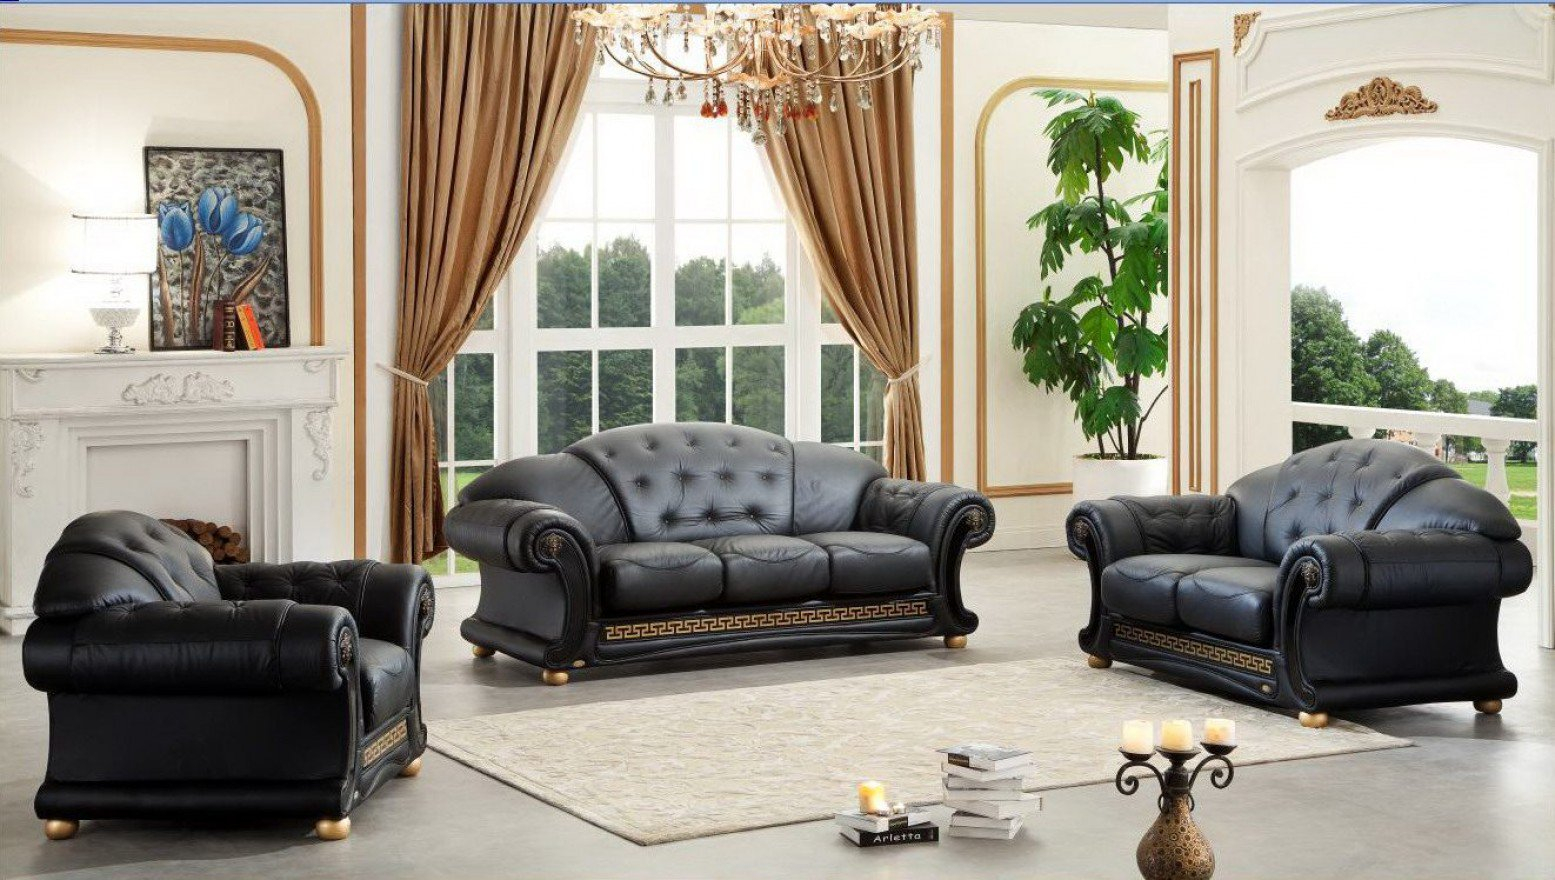 Apolo Leathersplit Living Room Set Esf Furniture Sohomod in 11 Clever Ways How to Build Living Room Set For Sale